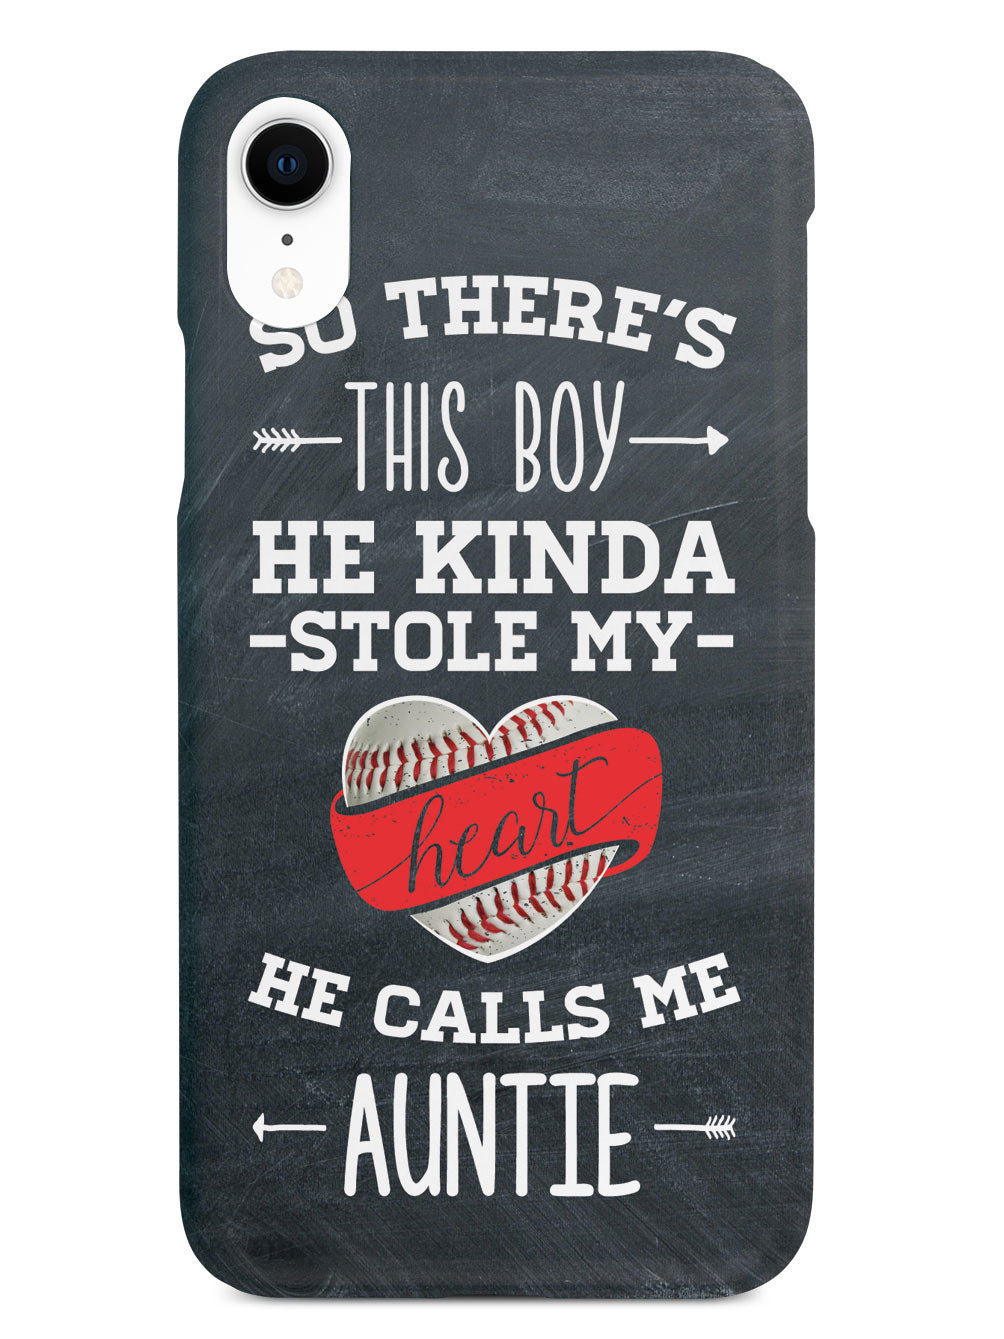 So There's This Boy... Baseball Player - Auntie Case